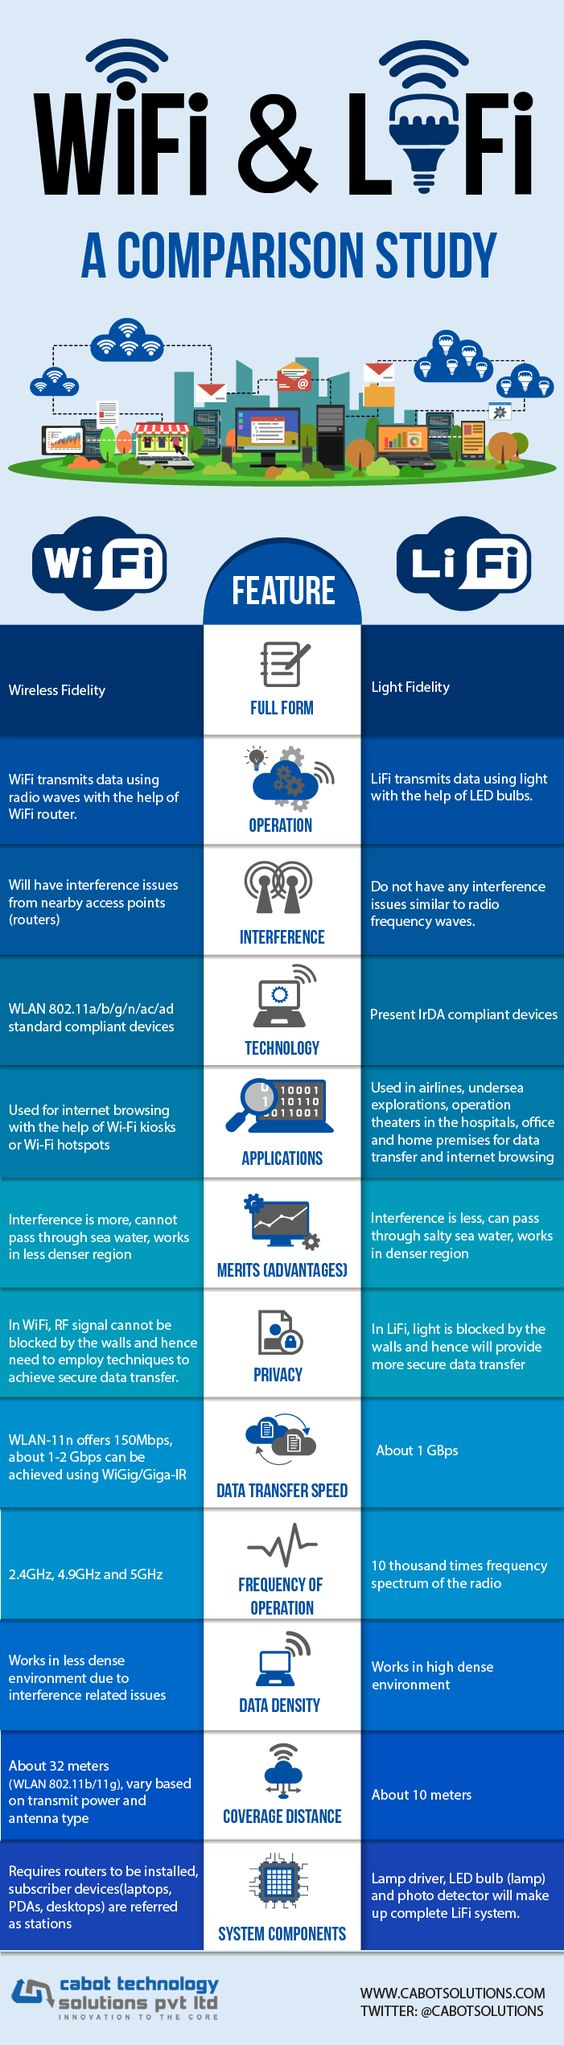 Contrast Between WiFi and LiFi #Infographic #Technology: